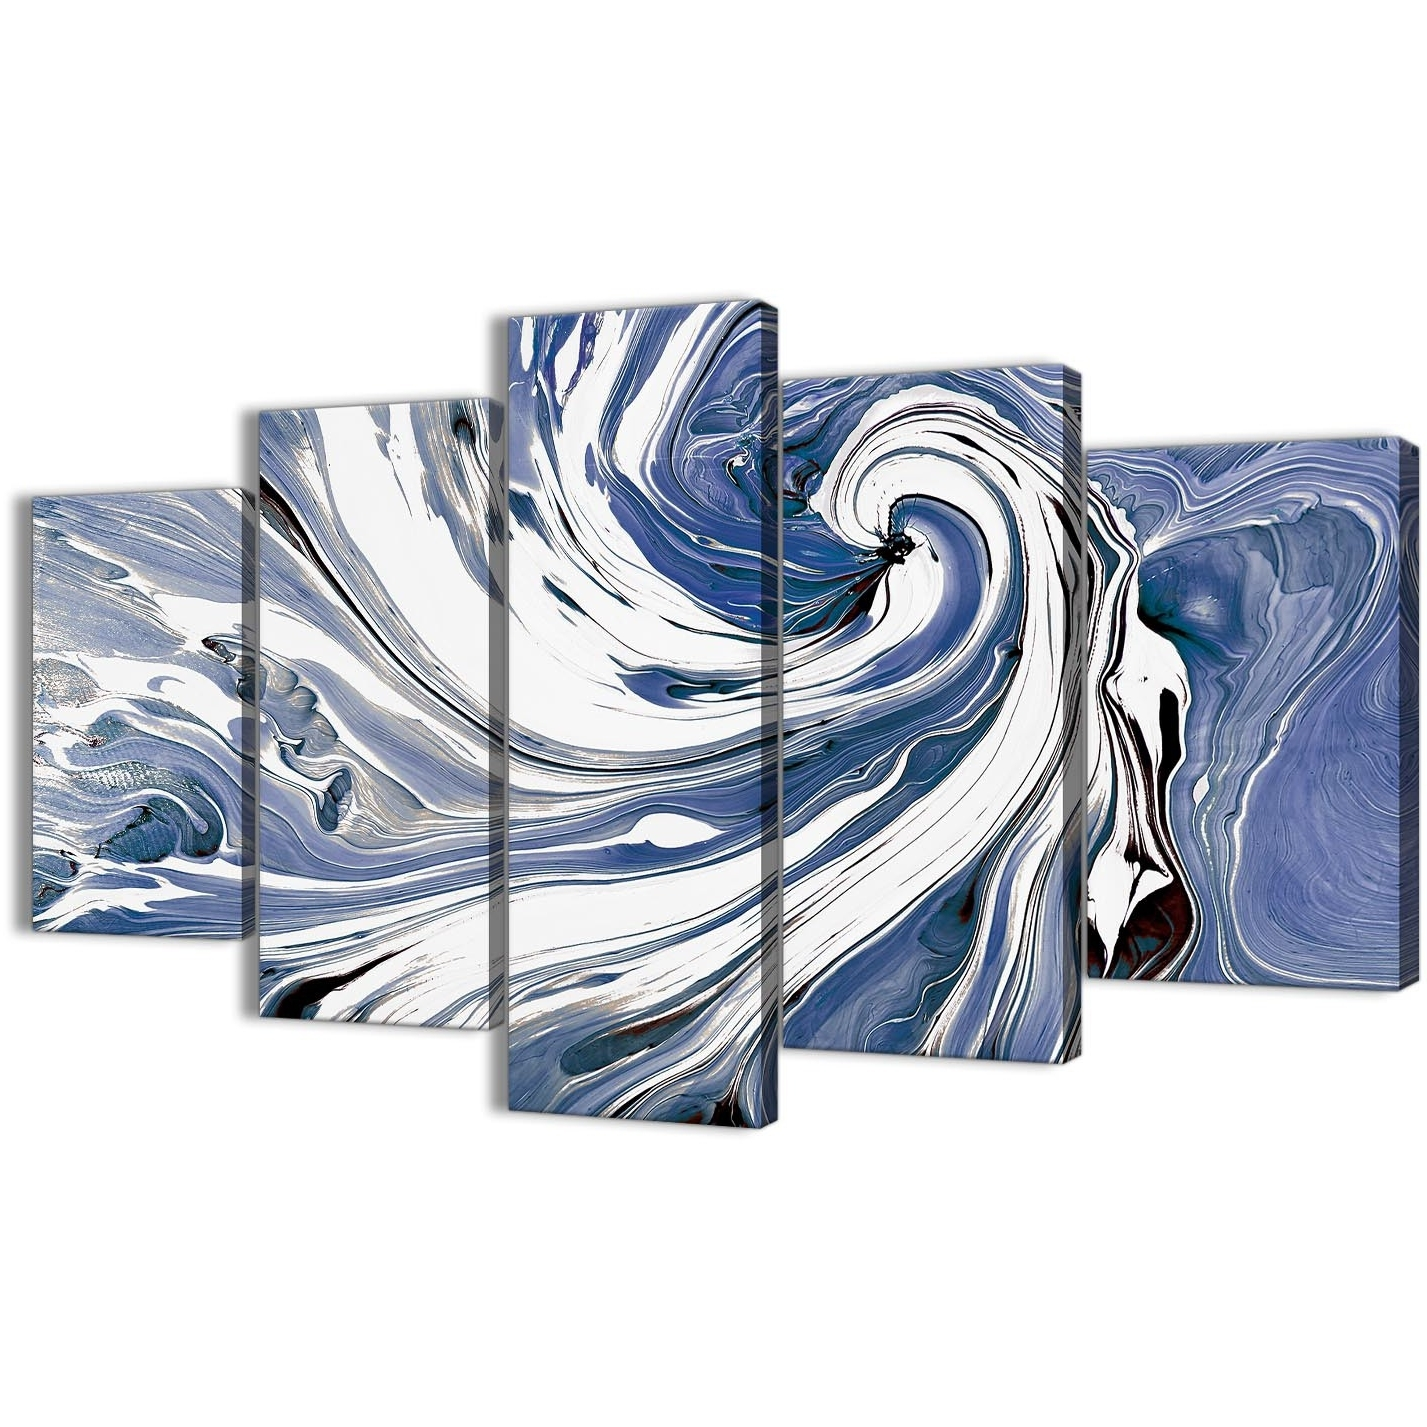 Extra Large Indigo Blue White Swirls Modern Abstract Canvas Wall Art In Most Up To Date Abstract Oversized Canvas Wall Art (View 9 of 15)